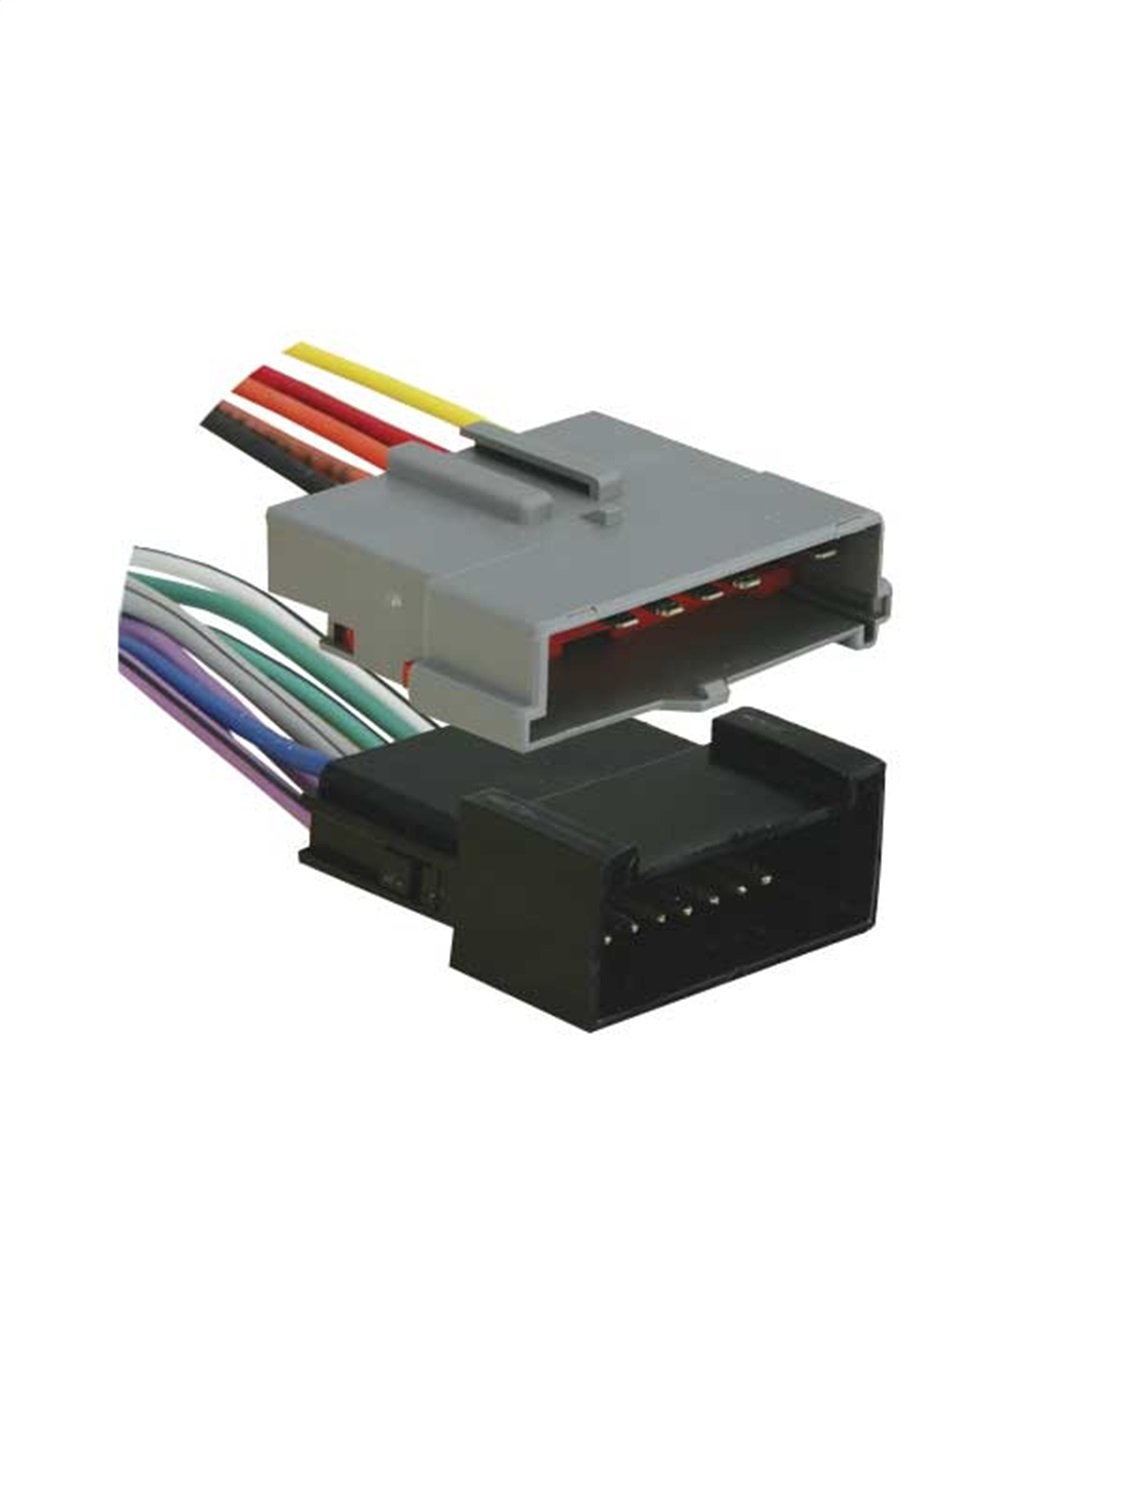 Amazon.com: Metra 70-5605 Amplifier Bypass Harness for Ford Contour ...